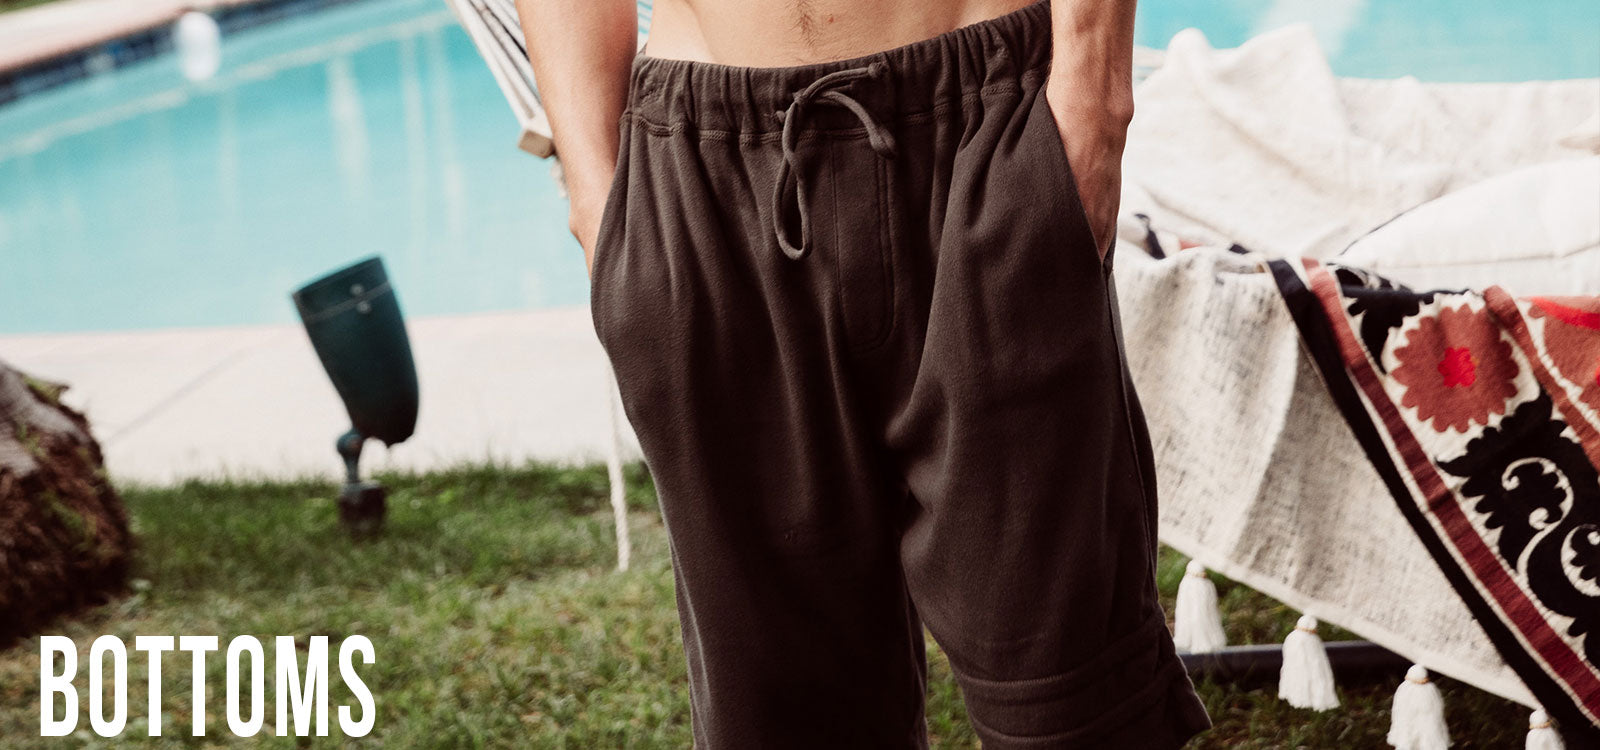 Summer 2019 Men's Bottoms from Chaser